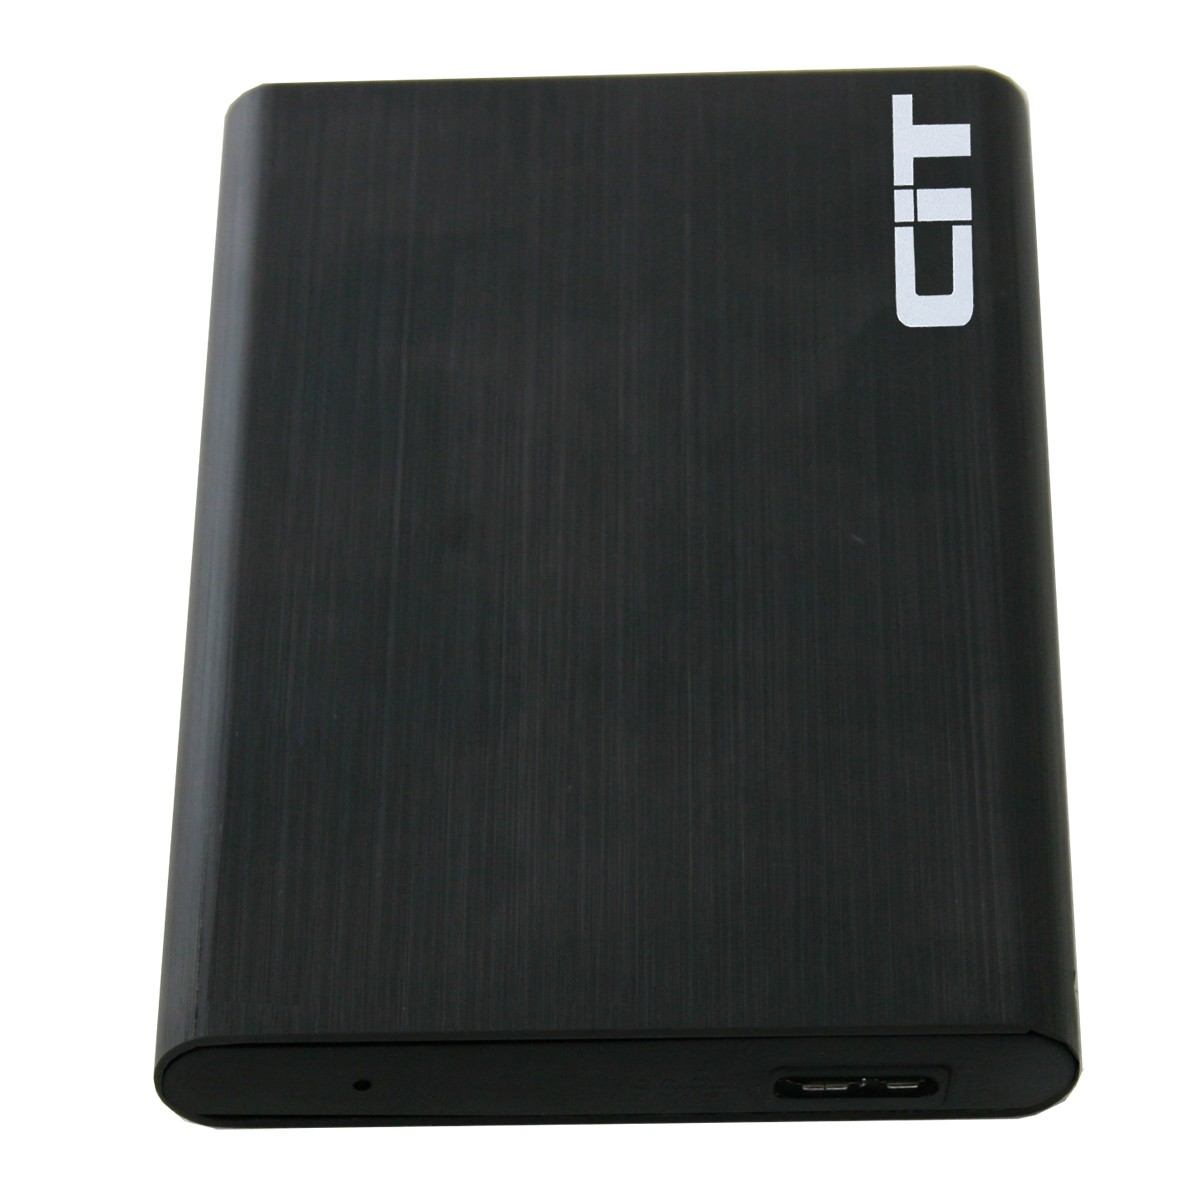 1TB 1000GB High Speed USB 3.0 External HDD Portable Mobile Hard Drive Disc